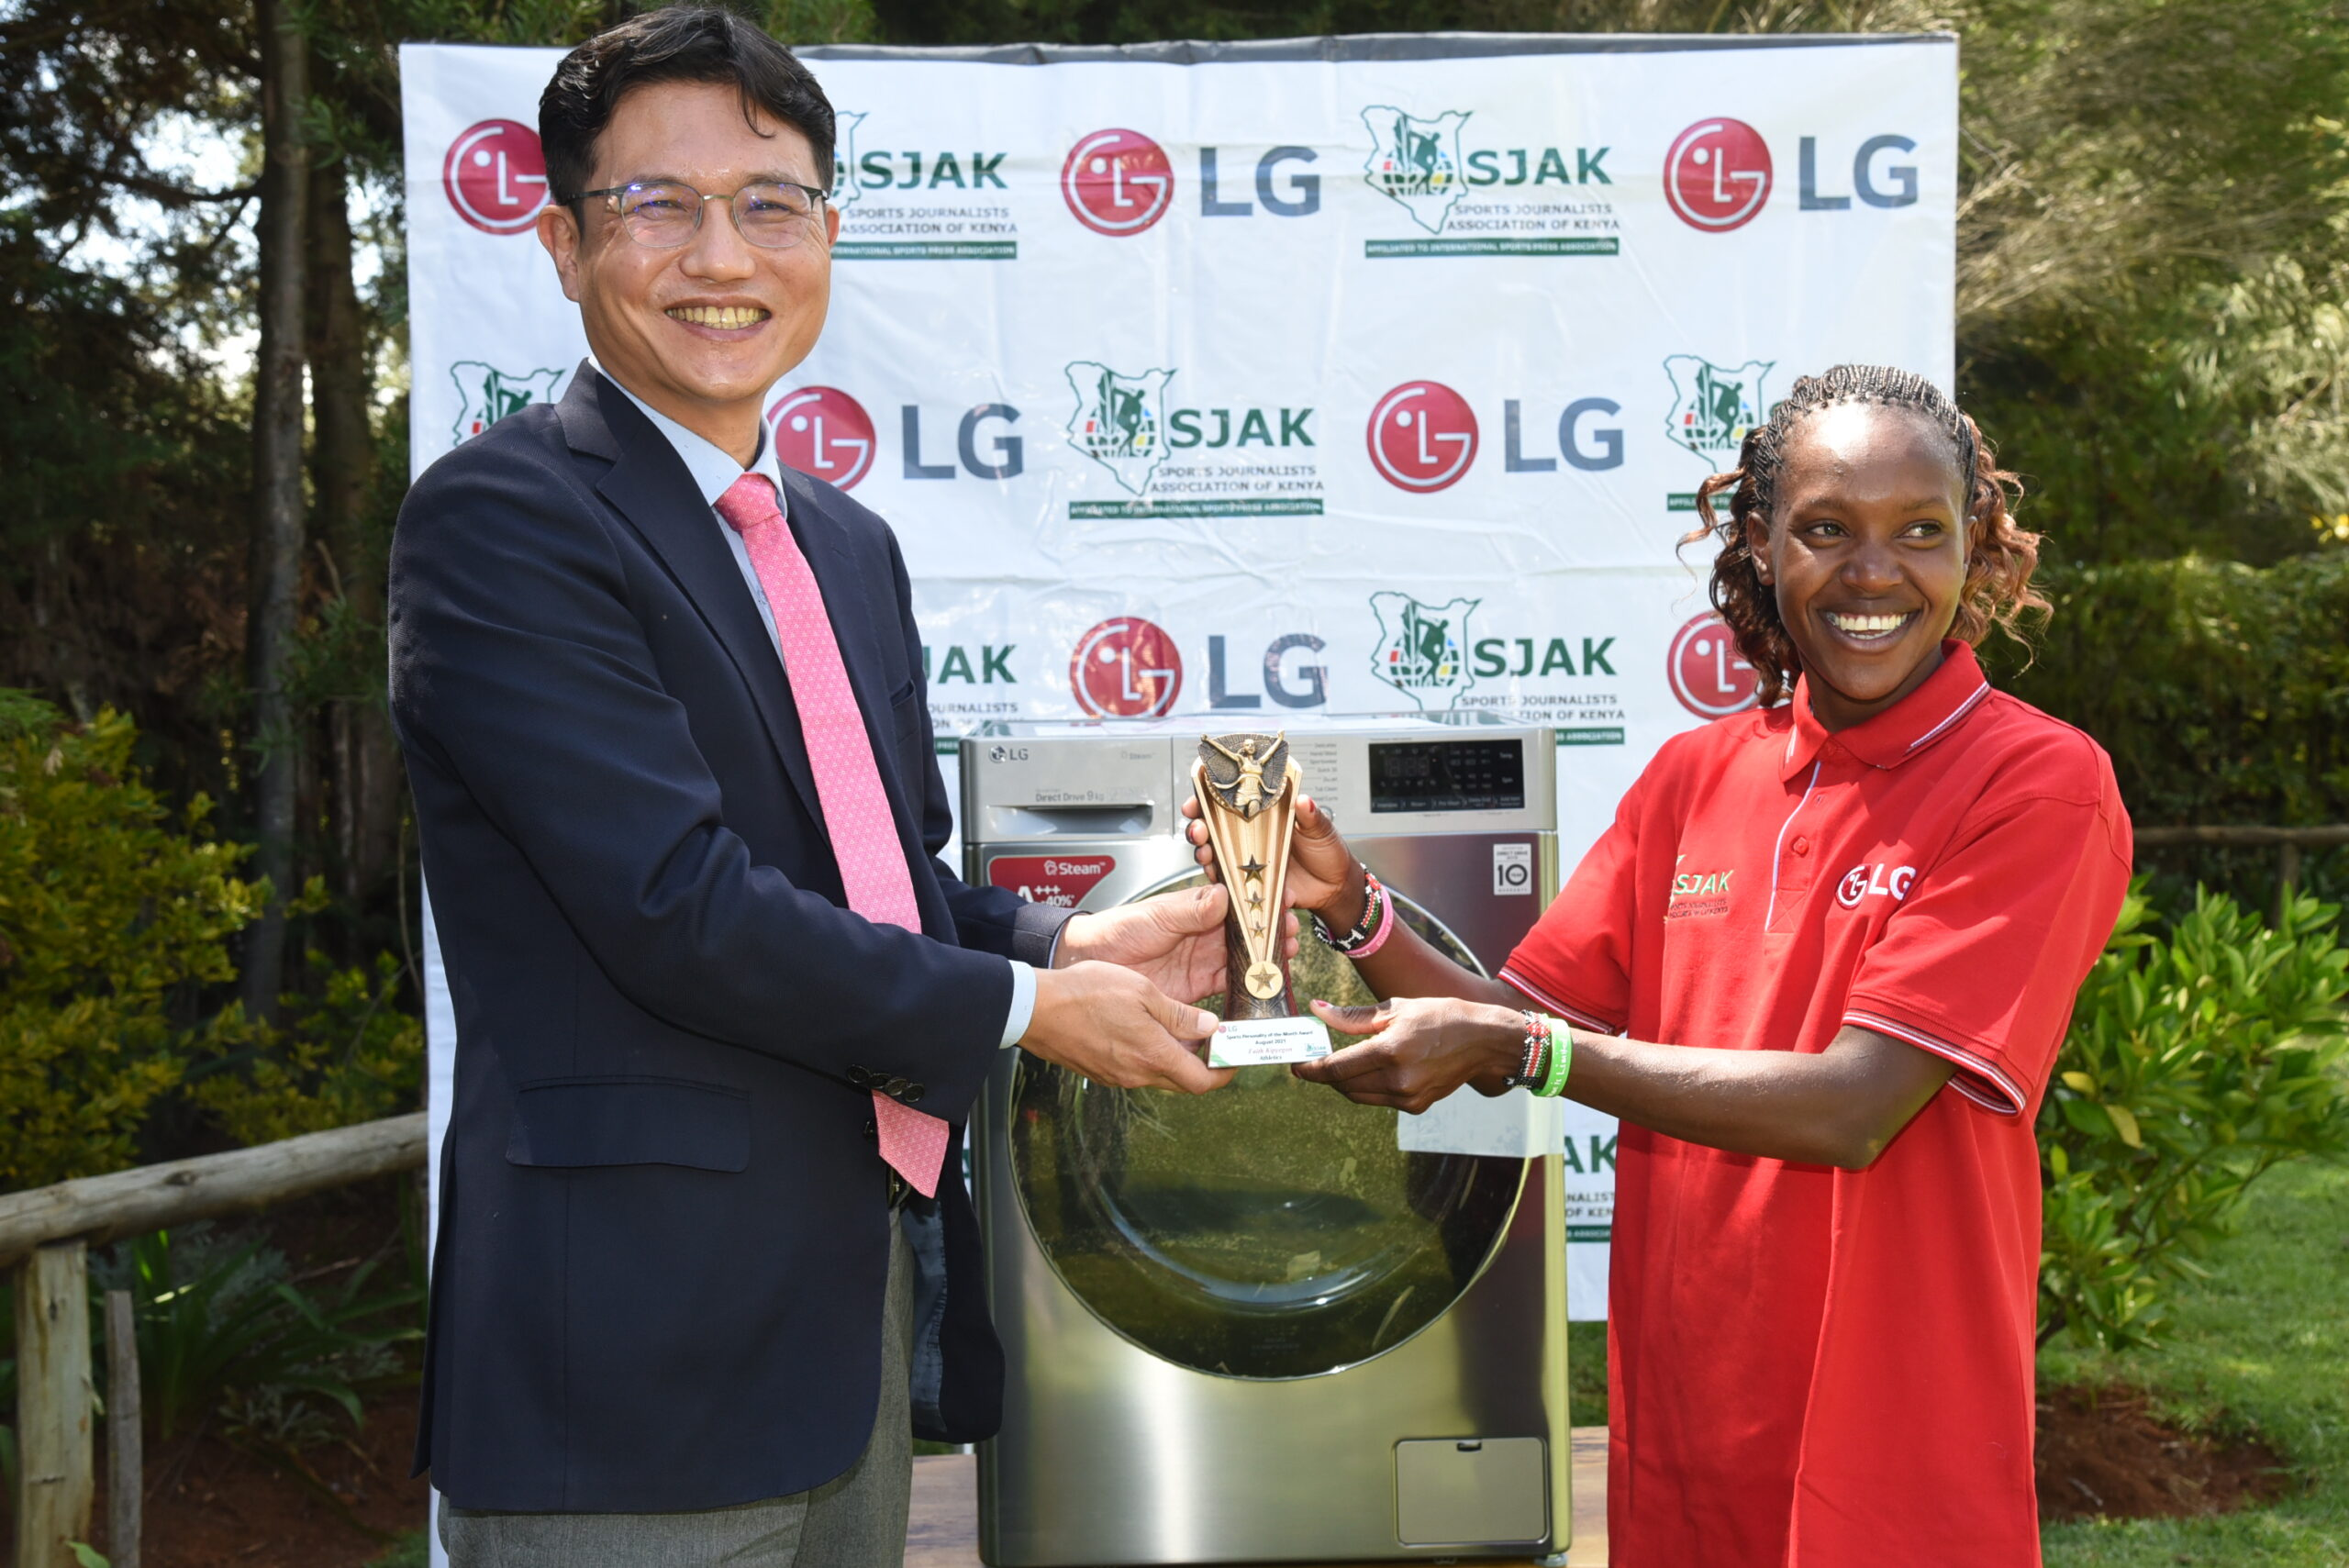 OLYMPIC CHAMP FAITH KIPYEGON CROWNED LG SPORTS PERSONALITY AUGUST WINNER